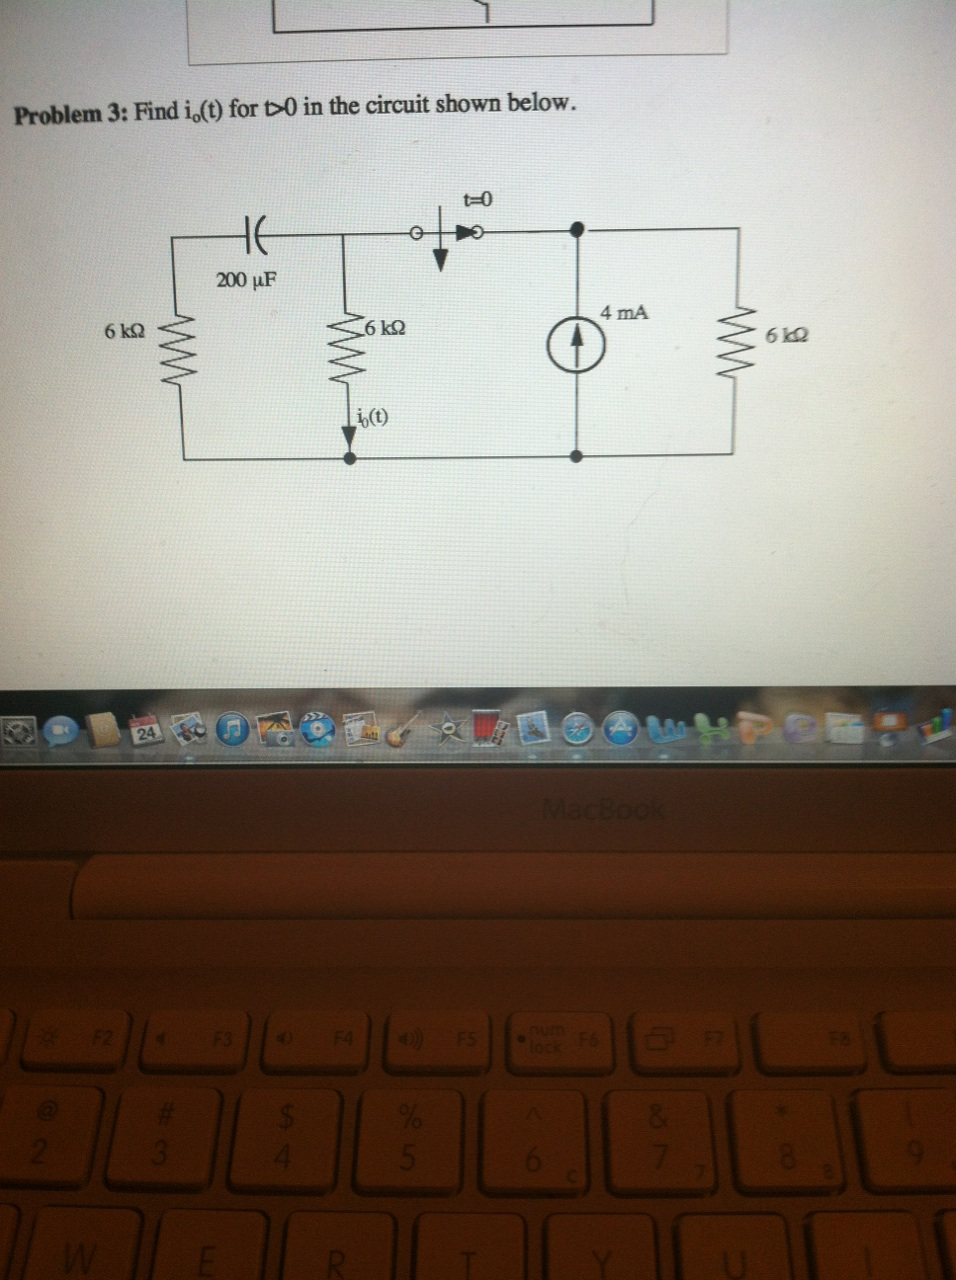 Find i0(t) for t>0 in the circuit shown below.